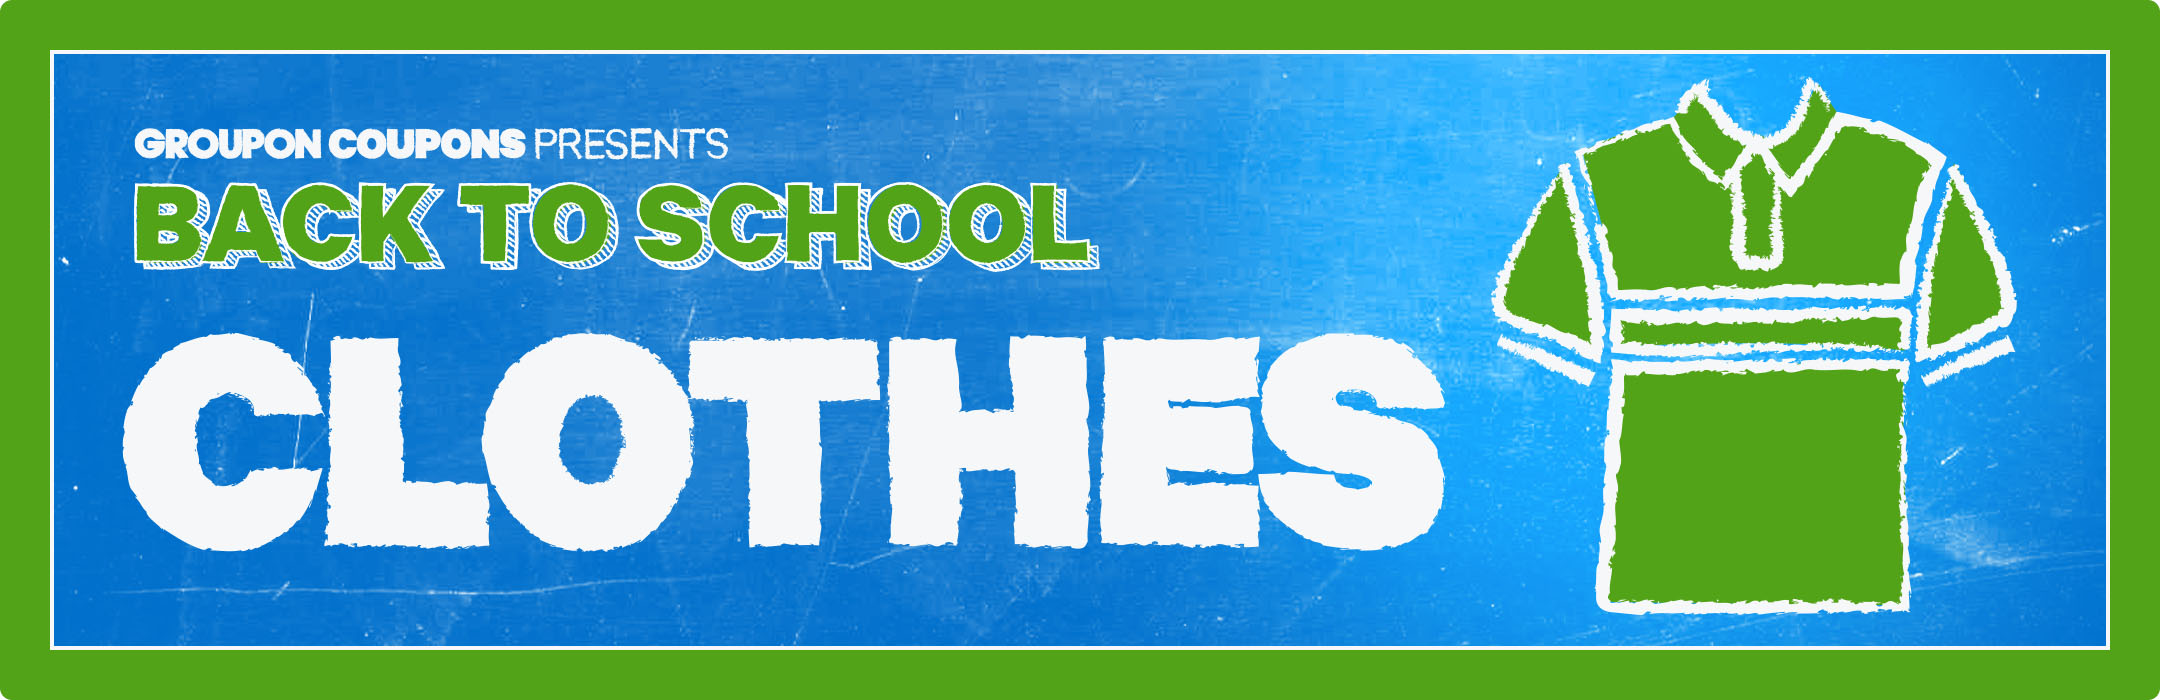 Back to School Clothing Sales & Savings Groupon Coupons